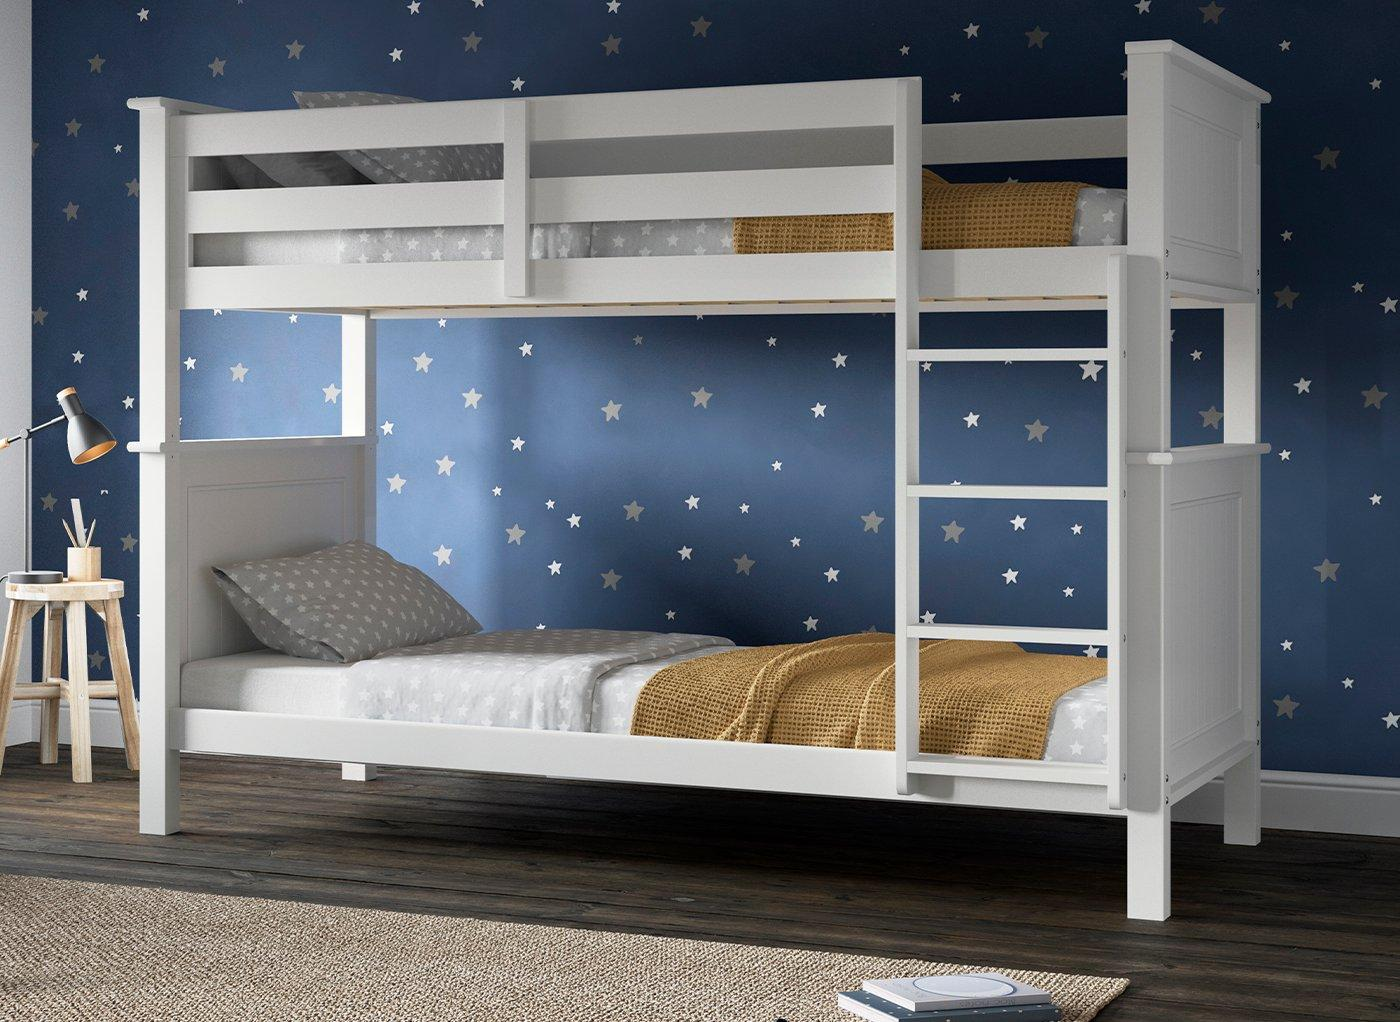 pluto-wooden-bunk-bed